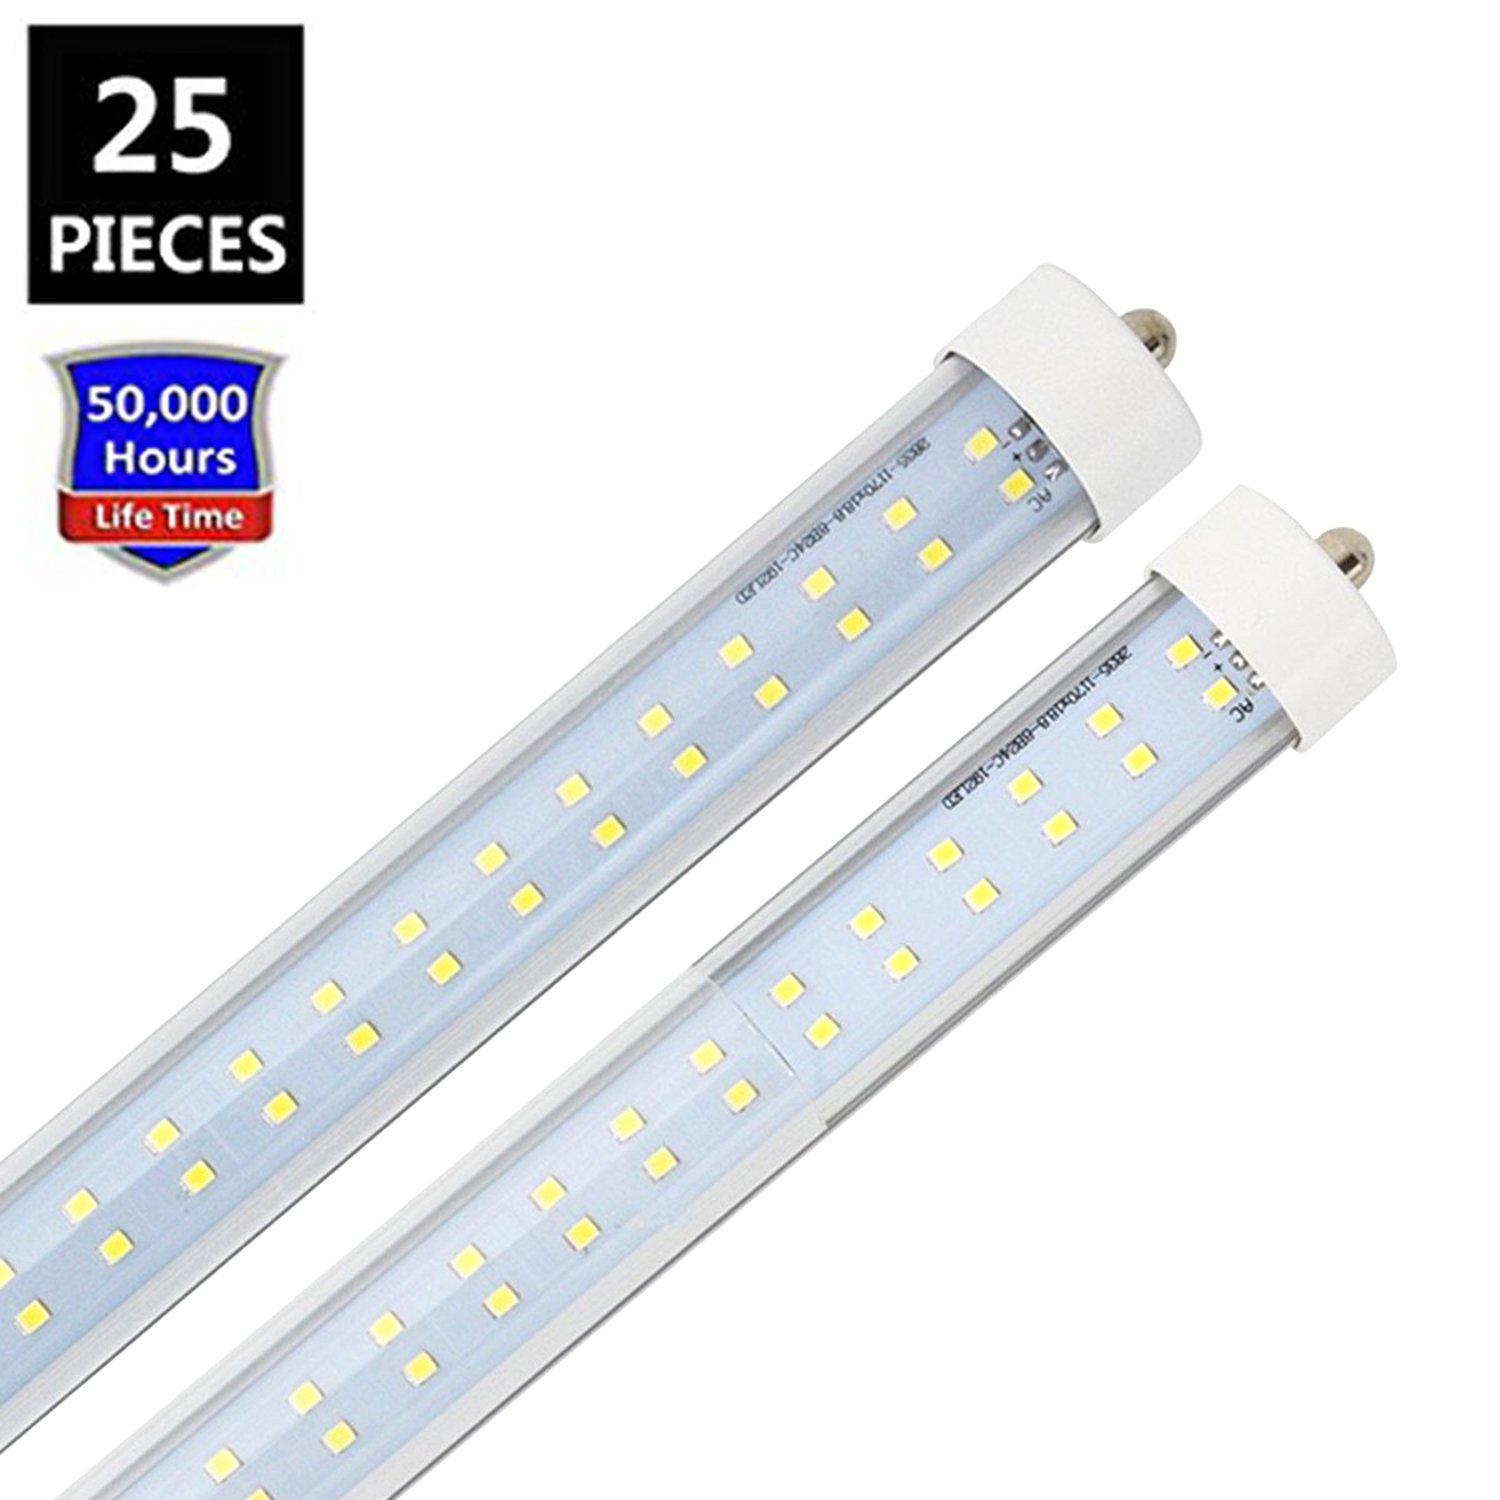 JESLED T8/T10/T12 8FT LED Tube Light, Single Pin FA8 Base, 72W 7200LM, 6000K Cool White, 8 Foot Dual Row LED Fluorescent Bulbs (150W Replacement), Clear Cover, Dual-Ended Power (Ballast Removal)